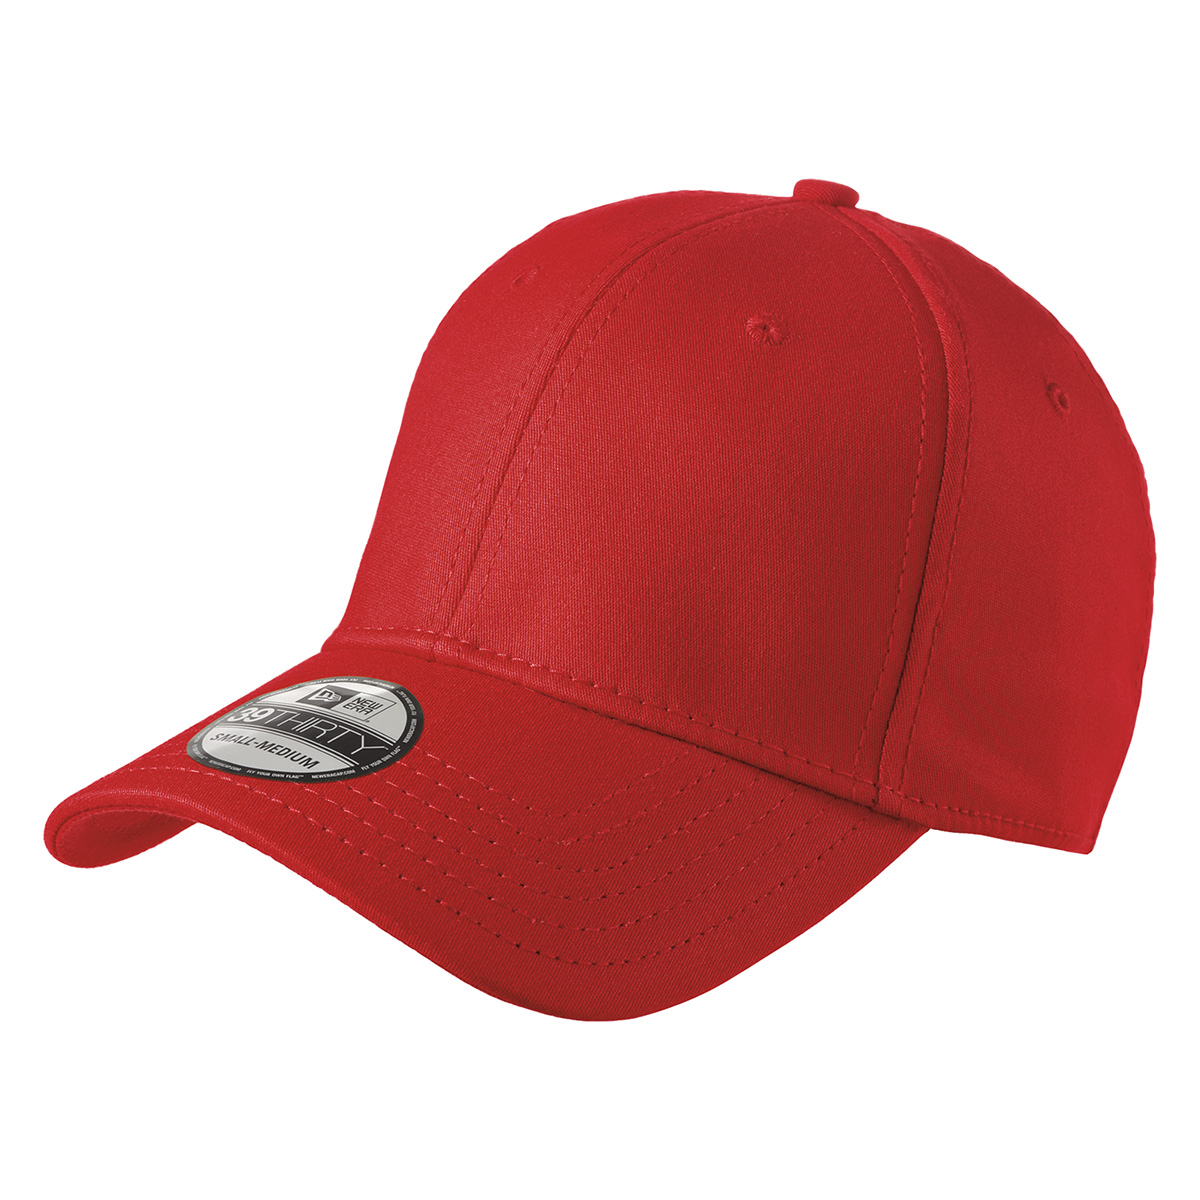 NE1000 New Era® Structured Stretch Cotton Cap - Hit Promotional Products 8f89e5bf0a8